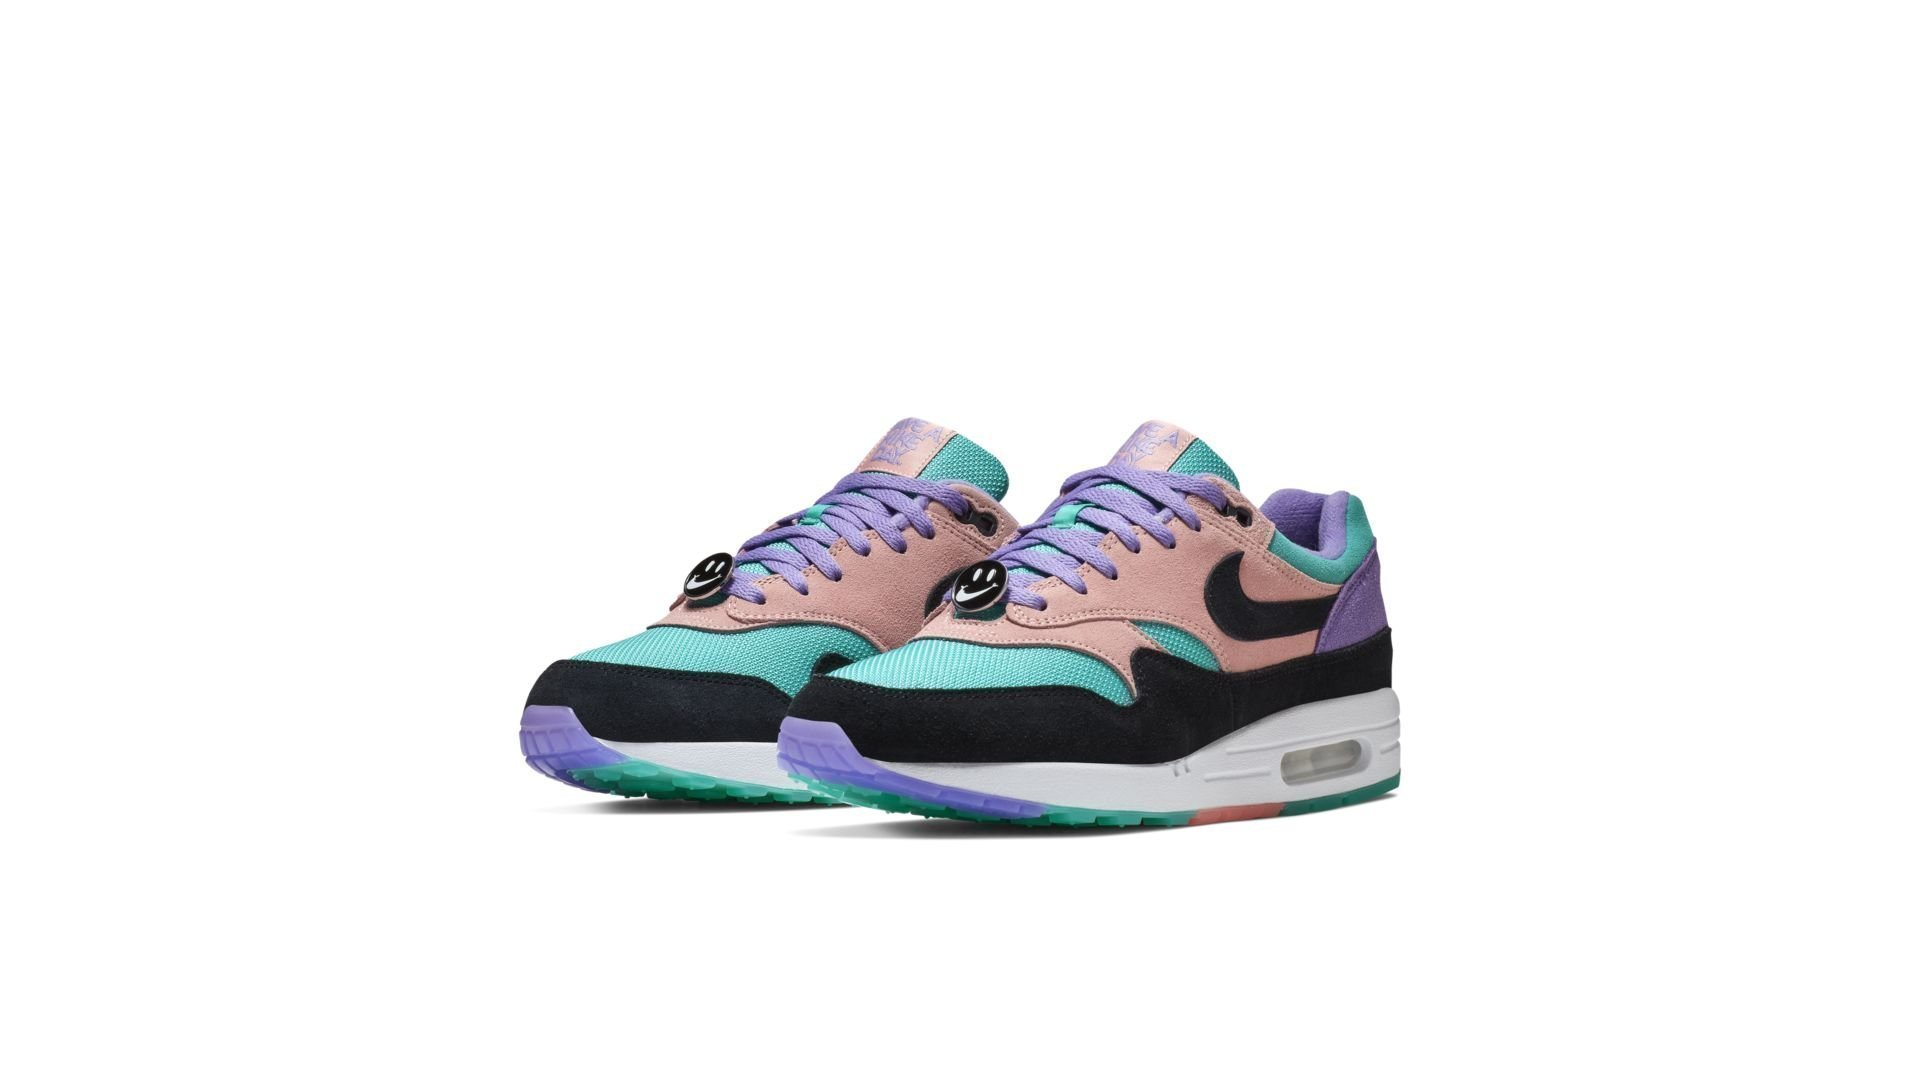 Nike Air Max 1 'Have A Nike Day</p>                         <!--bof Product URL -->                                                 <!--eof Product URL -->                         <!--bof Quantity Discounts table -->                                                 <!--eof Quantity Discounts table -->                     </div>                 </div>                 <div id=